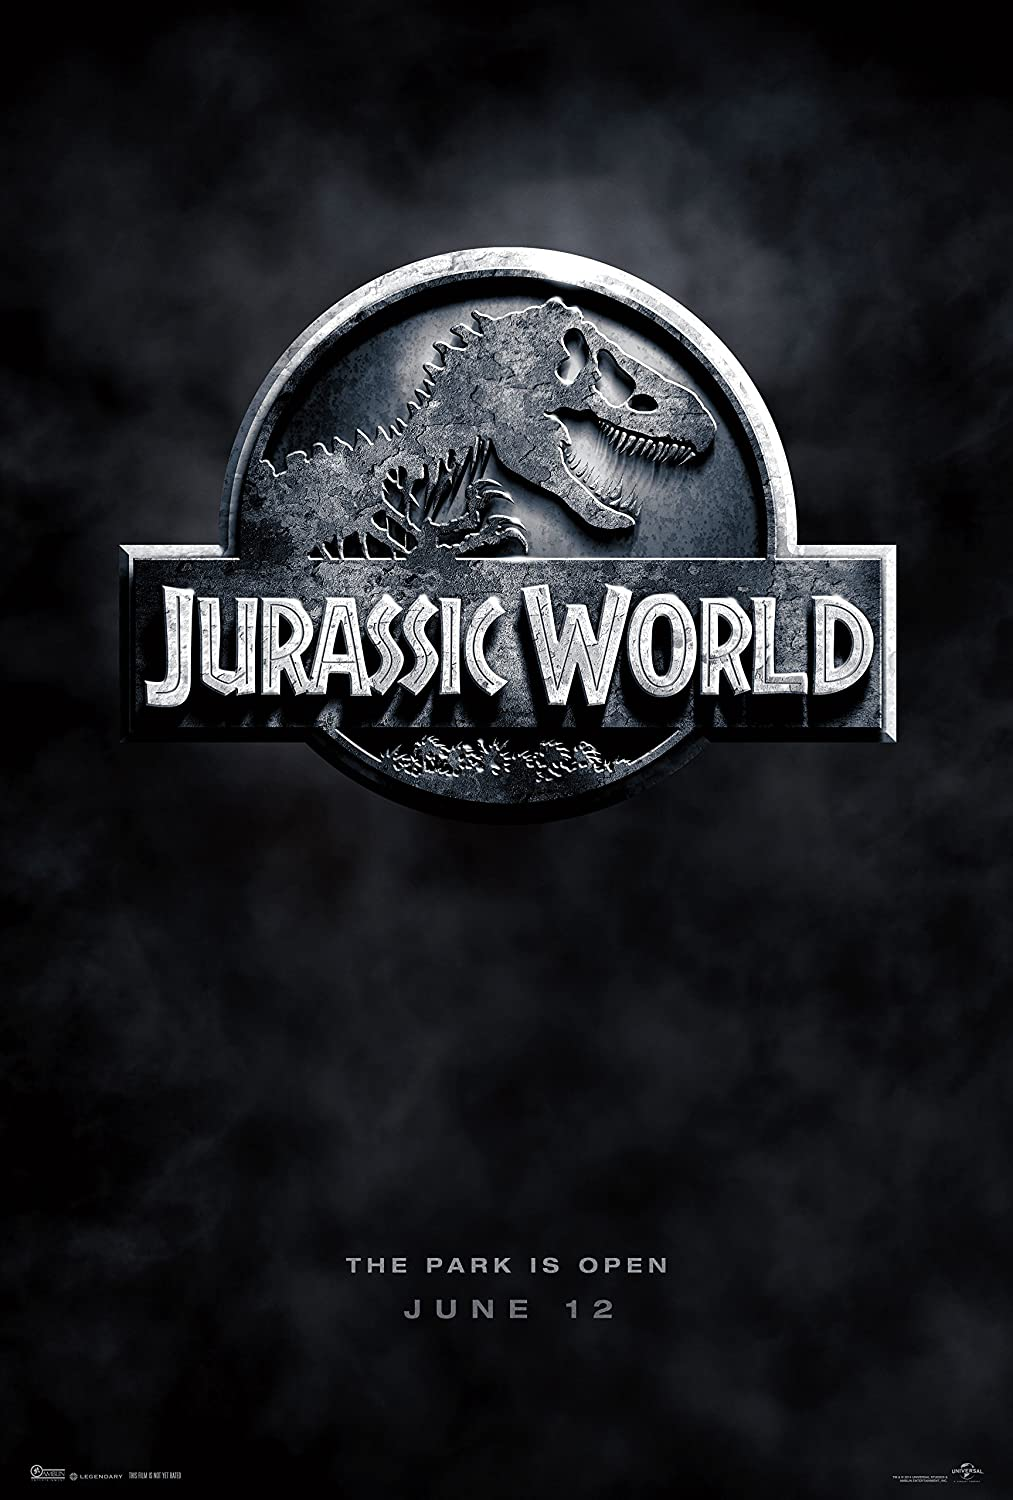 "Jurassic World (2015) Movie Poster 24 x 36"" Inches , Glossy Finish (Thick): Chris Pratt, Bryce Howard Dallas"